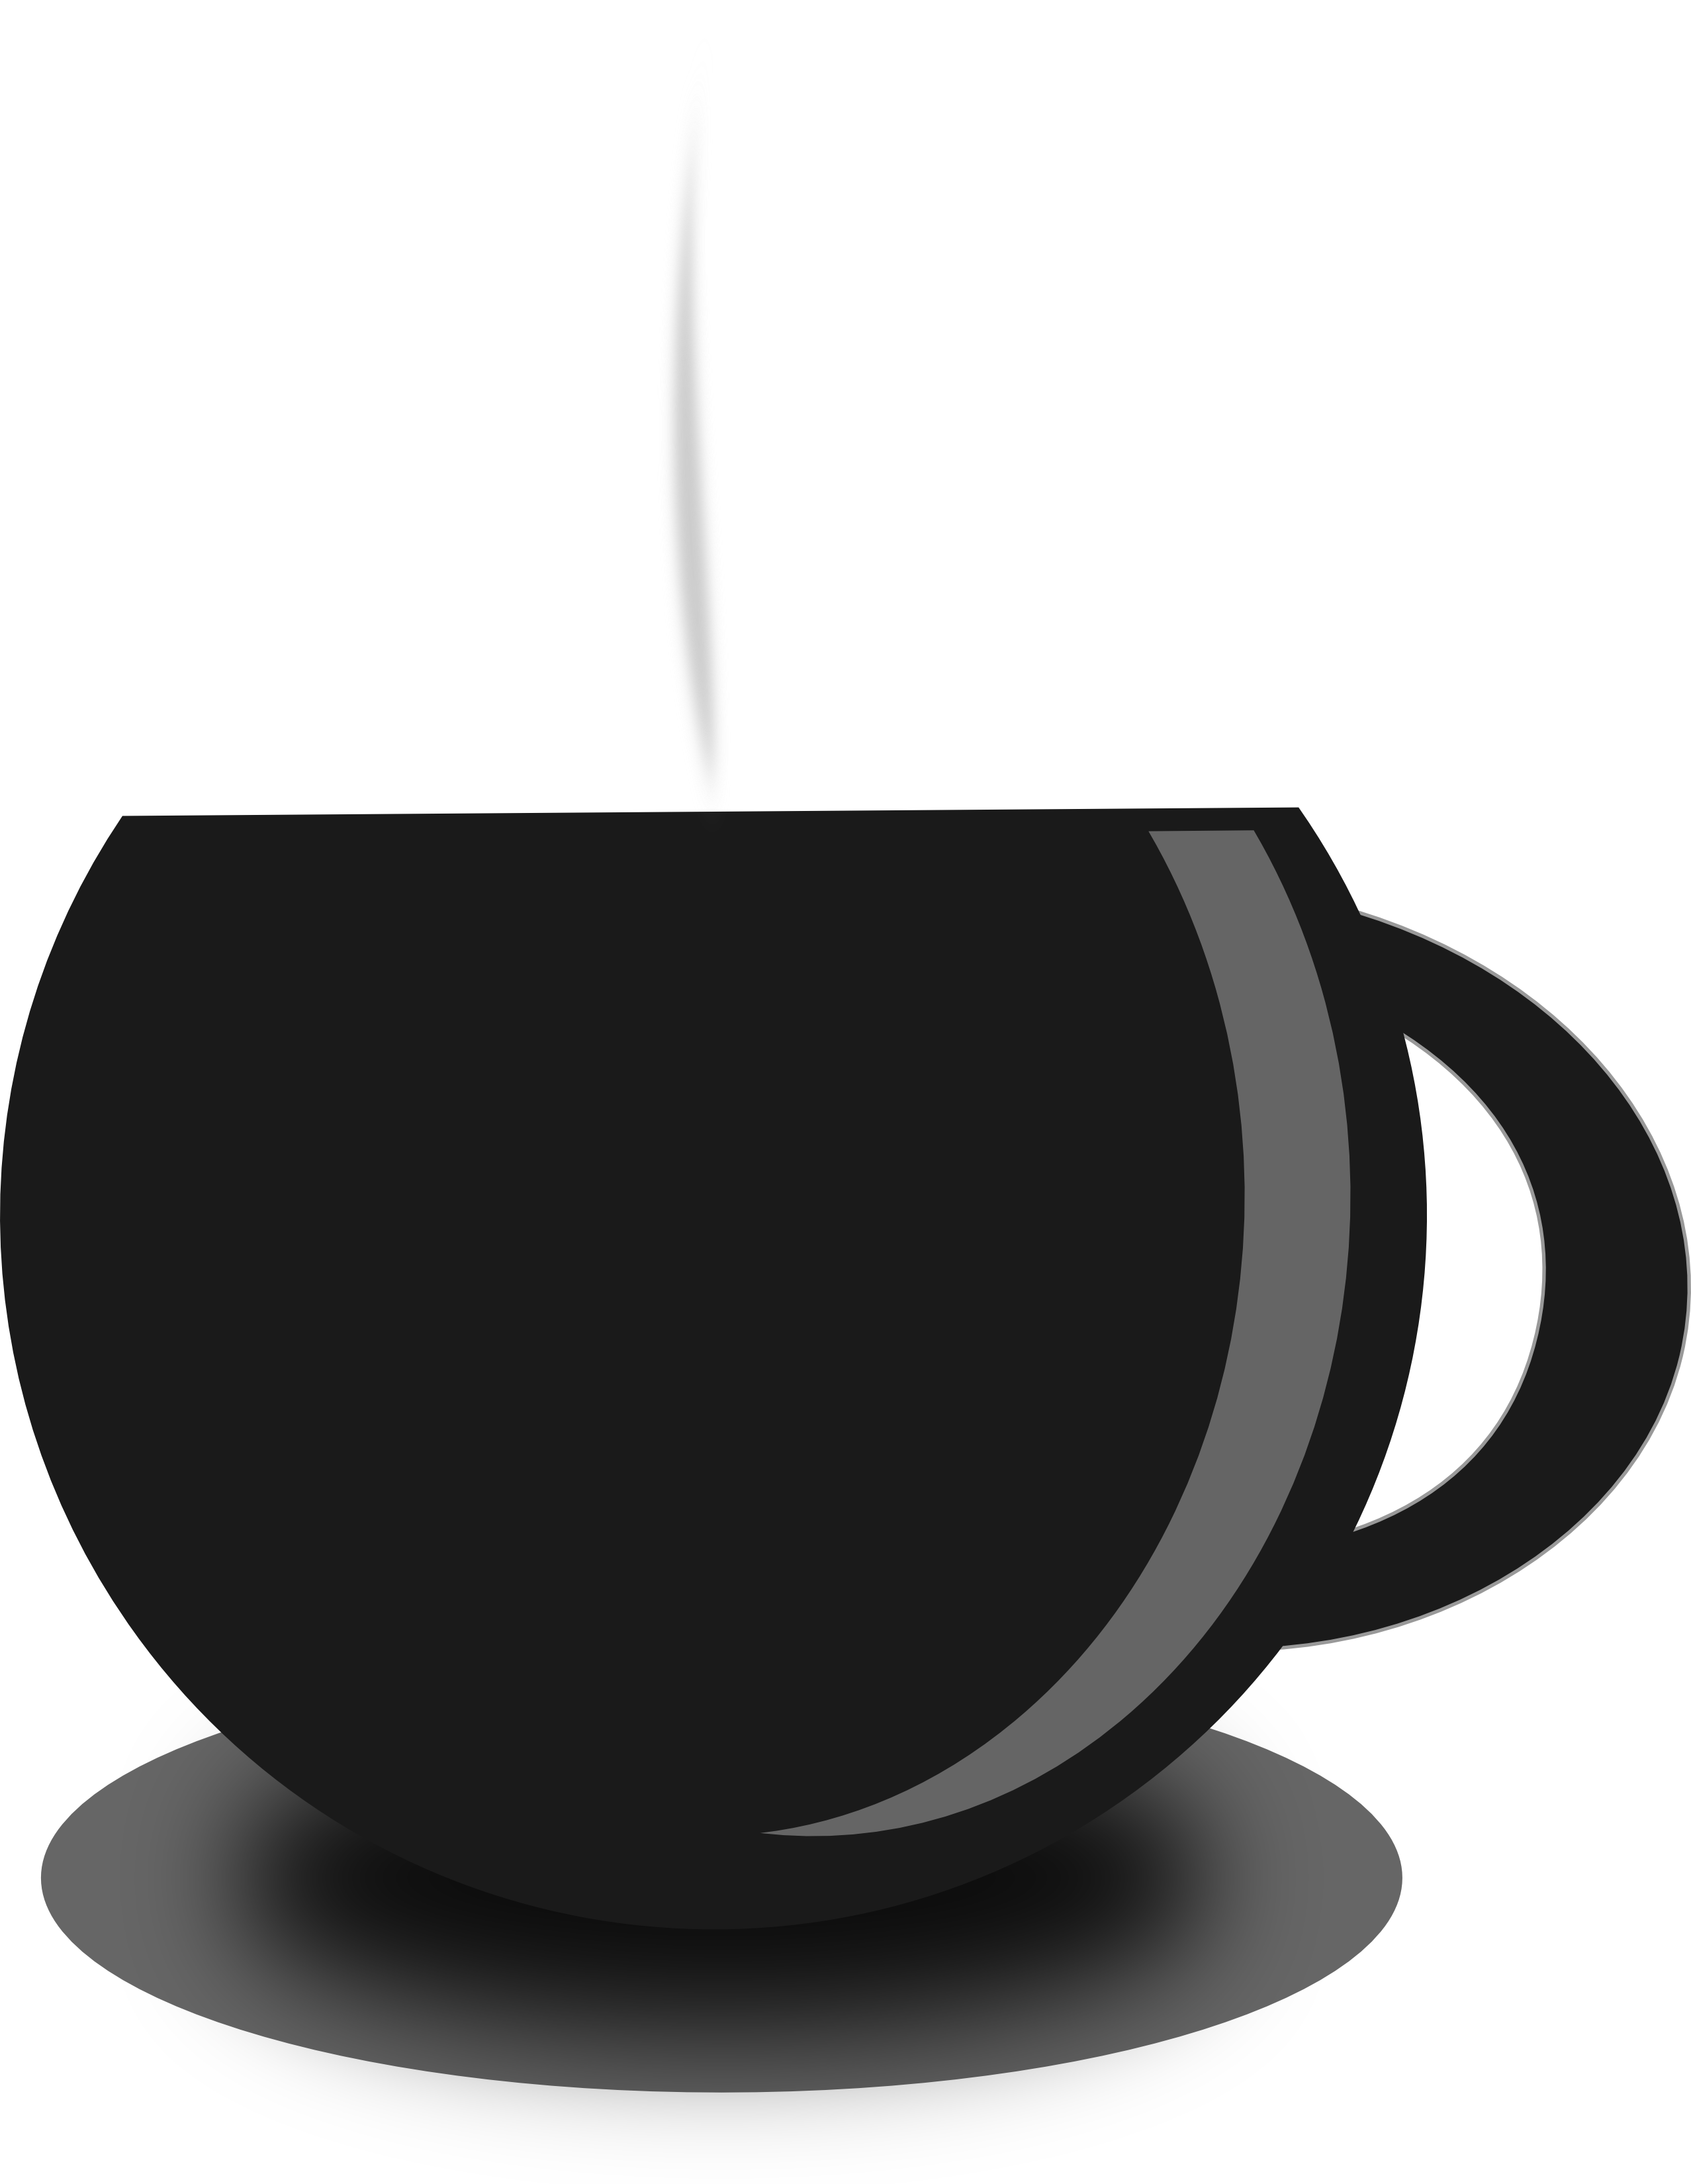 Tea Cup clipart #4, Download drawings